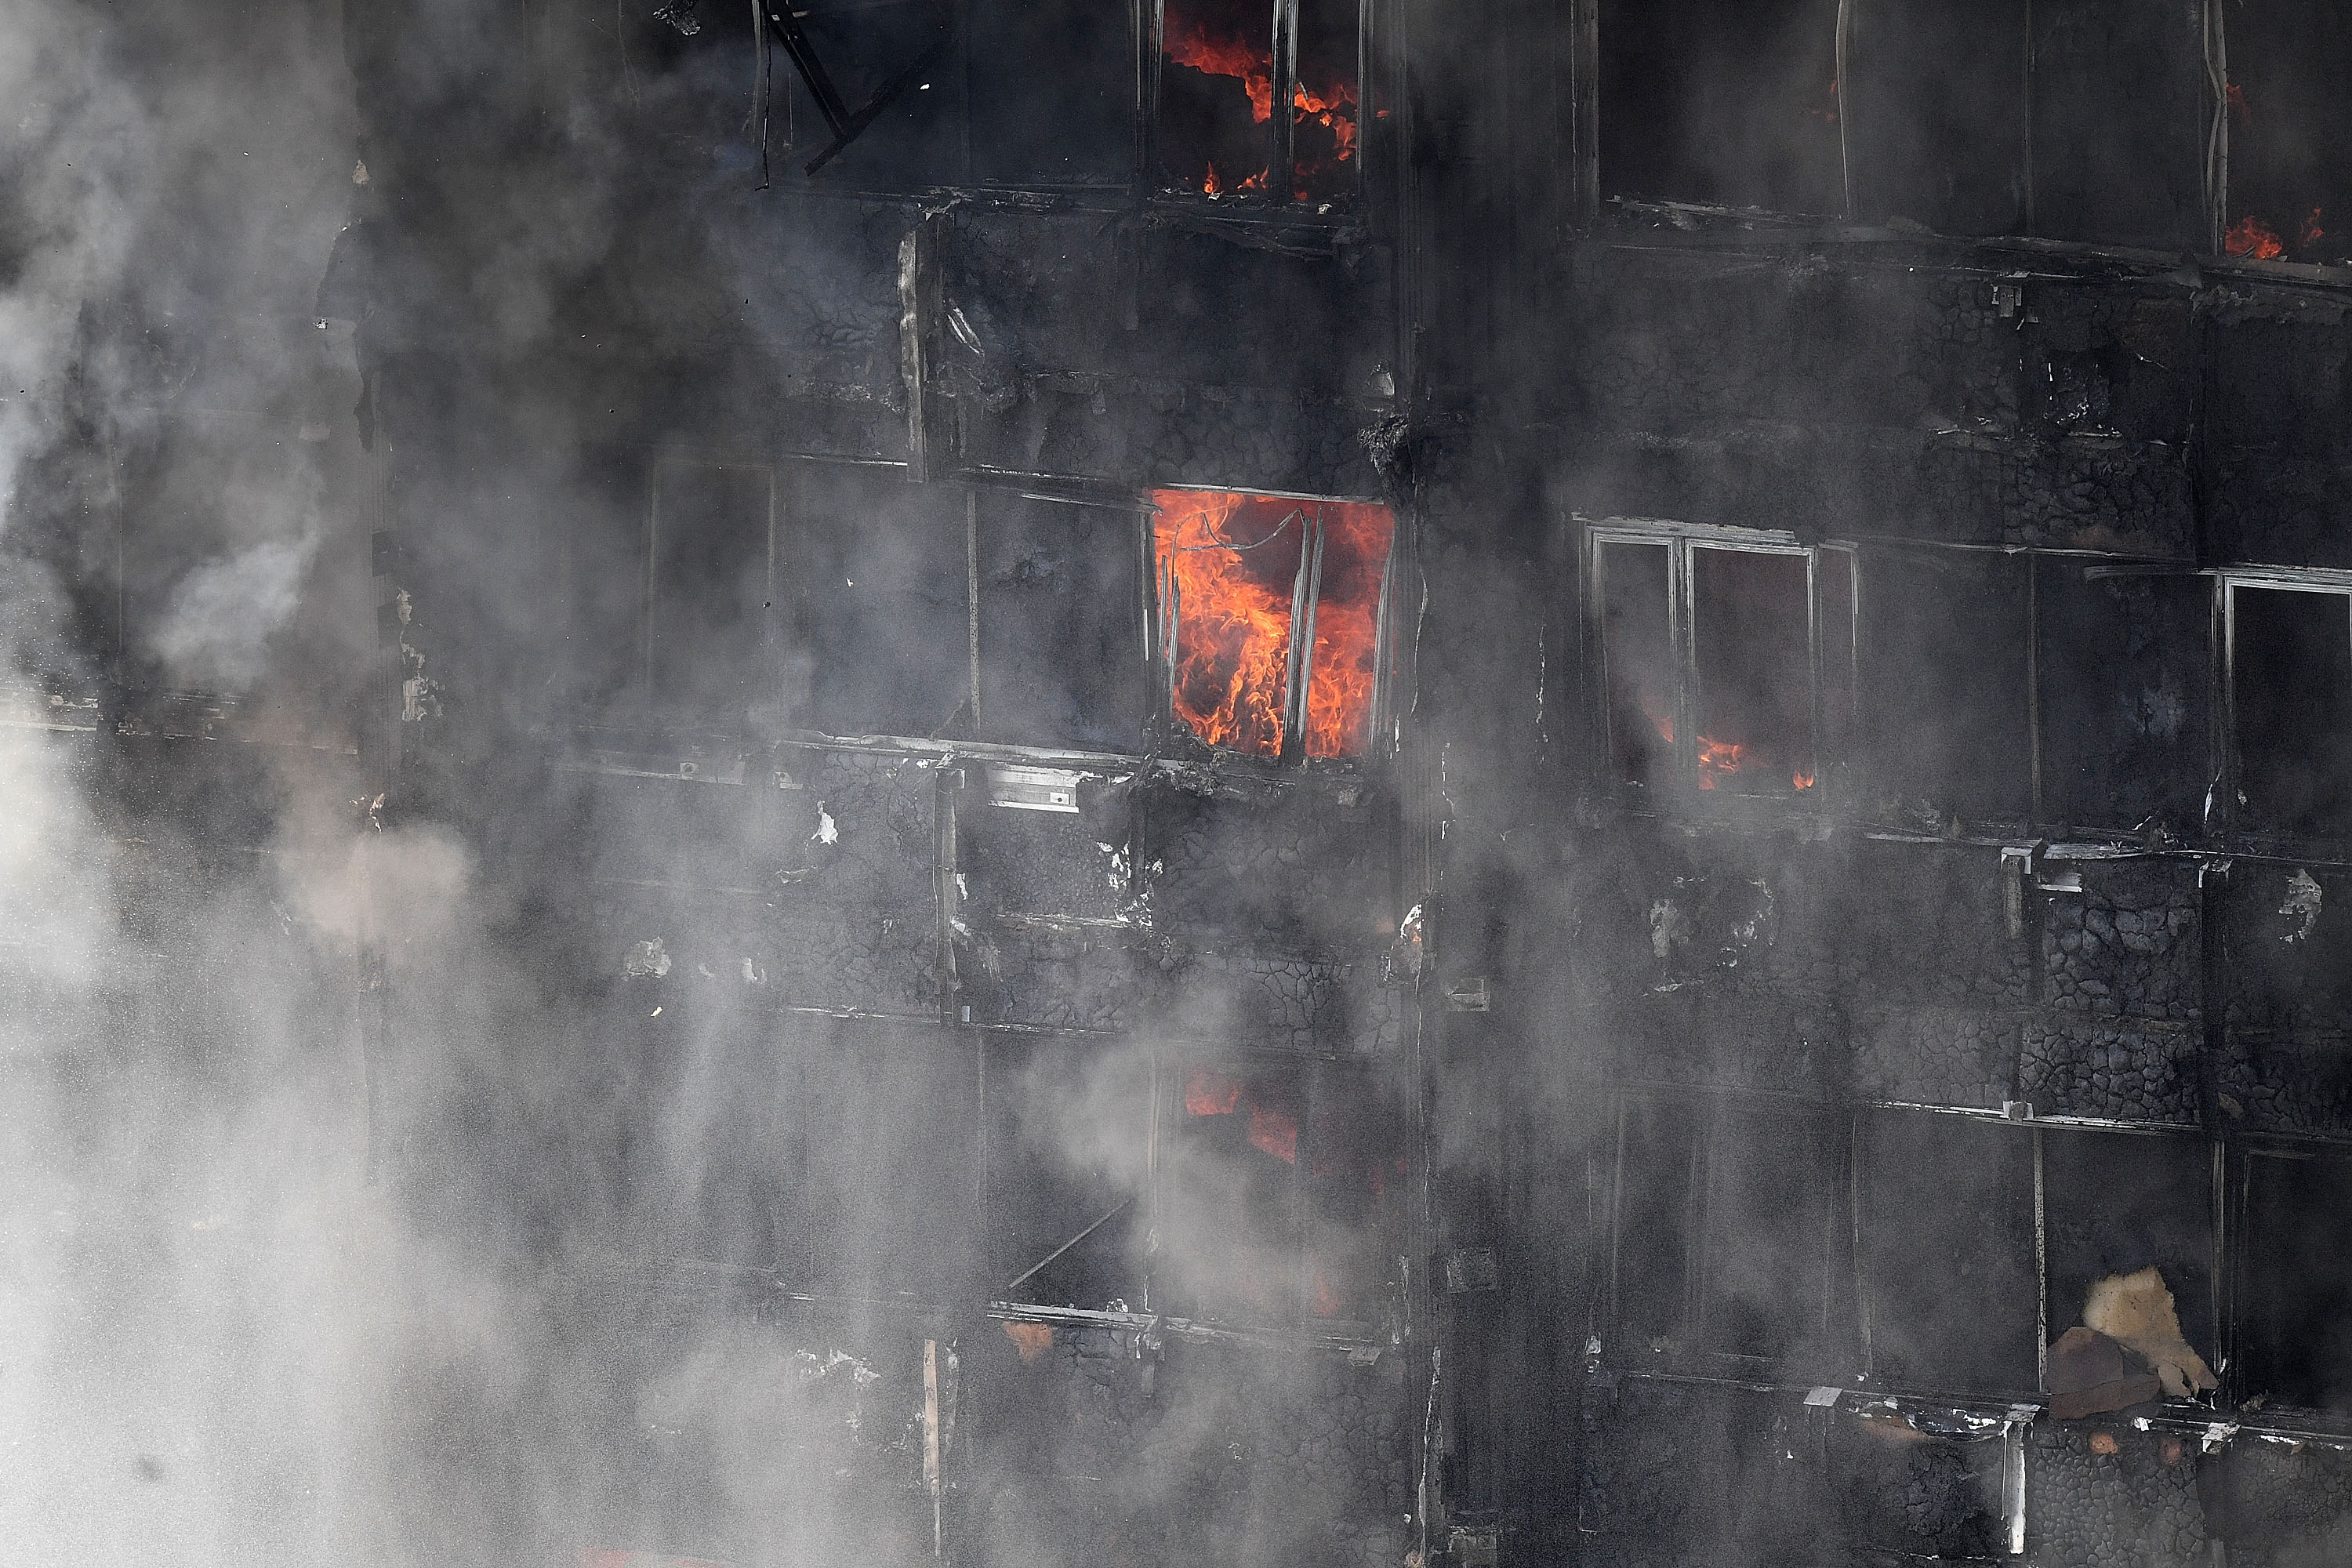 Flames continue to burn after a huge fire engulfed a 24-story residential Grenfell Tower block in West London in the early hours of June 14, 2017.  (Photo by Leon Neal/Getty Images)